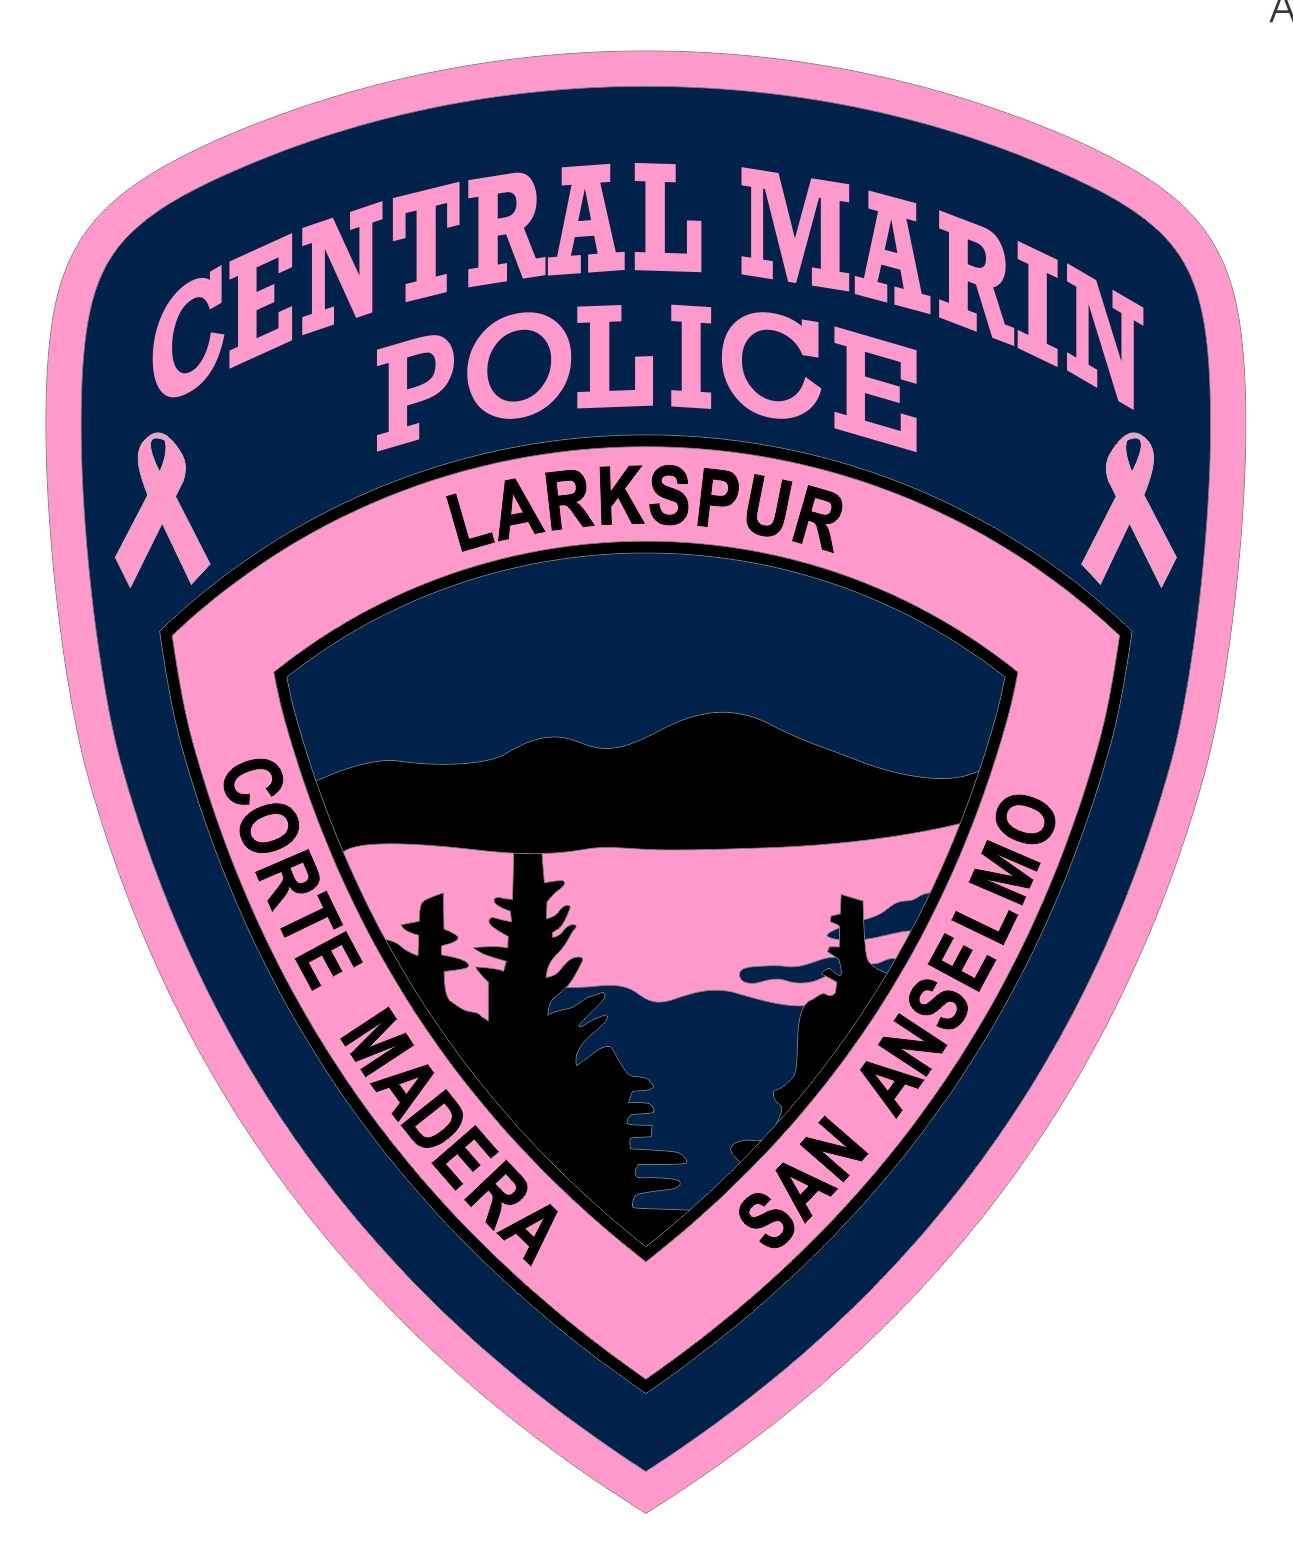 CENTRAL MARINE POLICE - PINK PATCH 2017.jpg